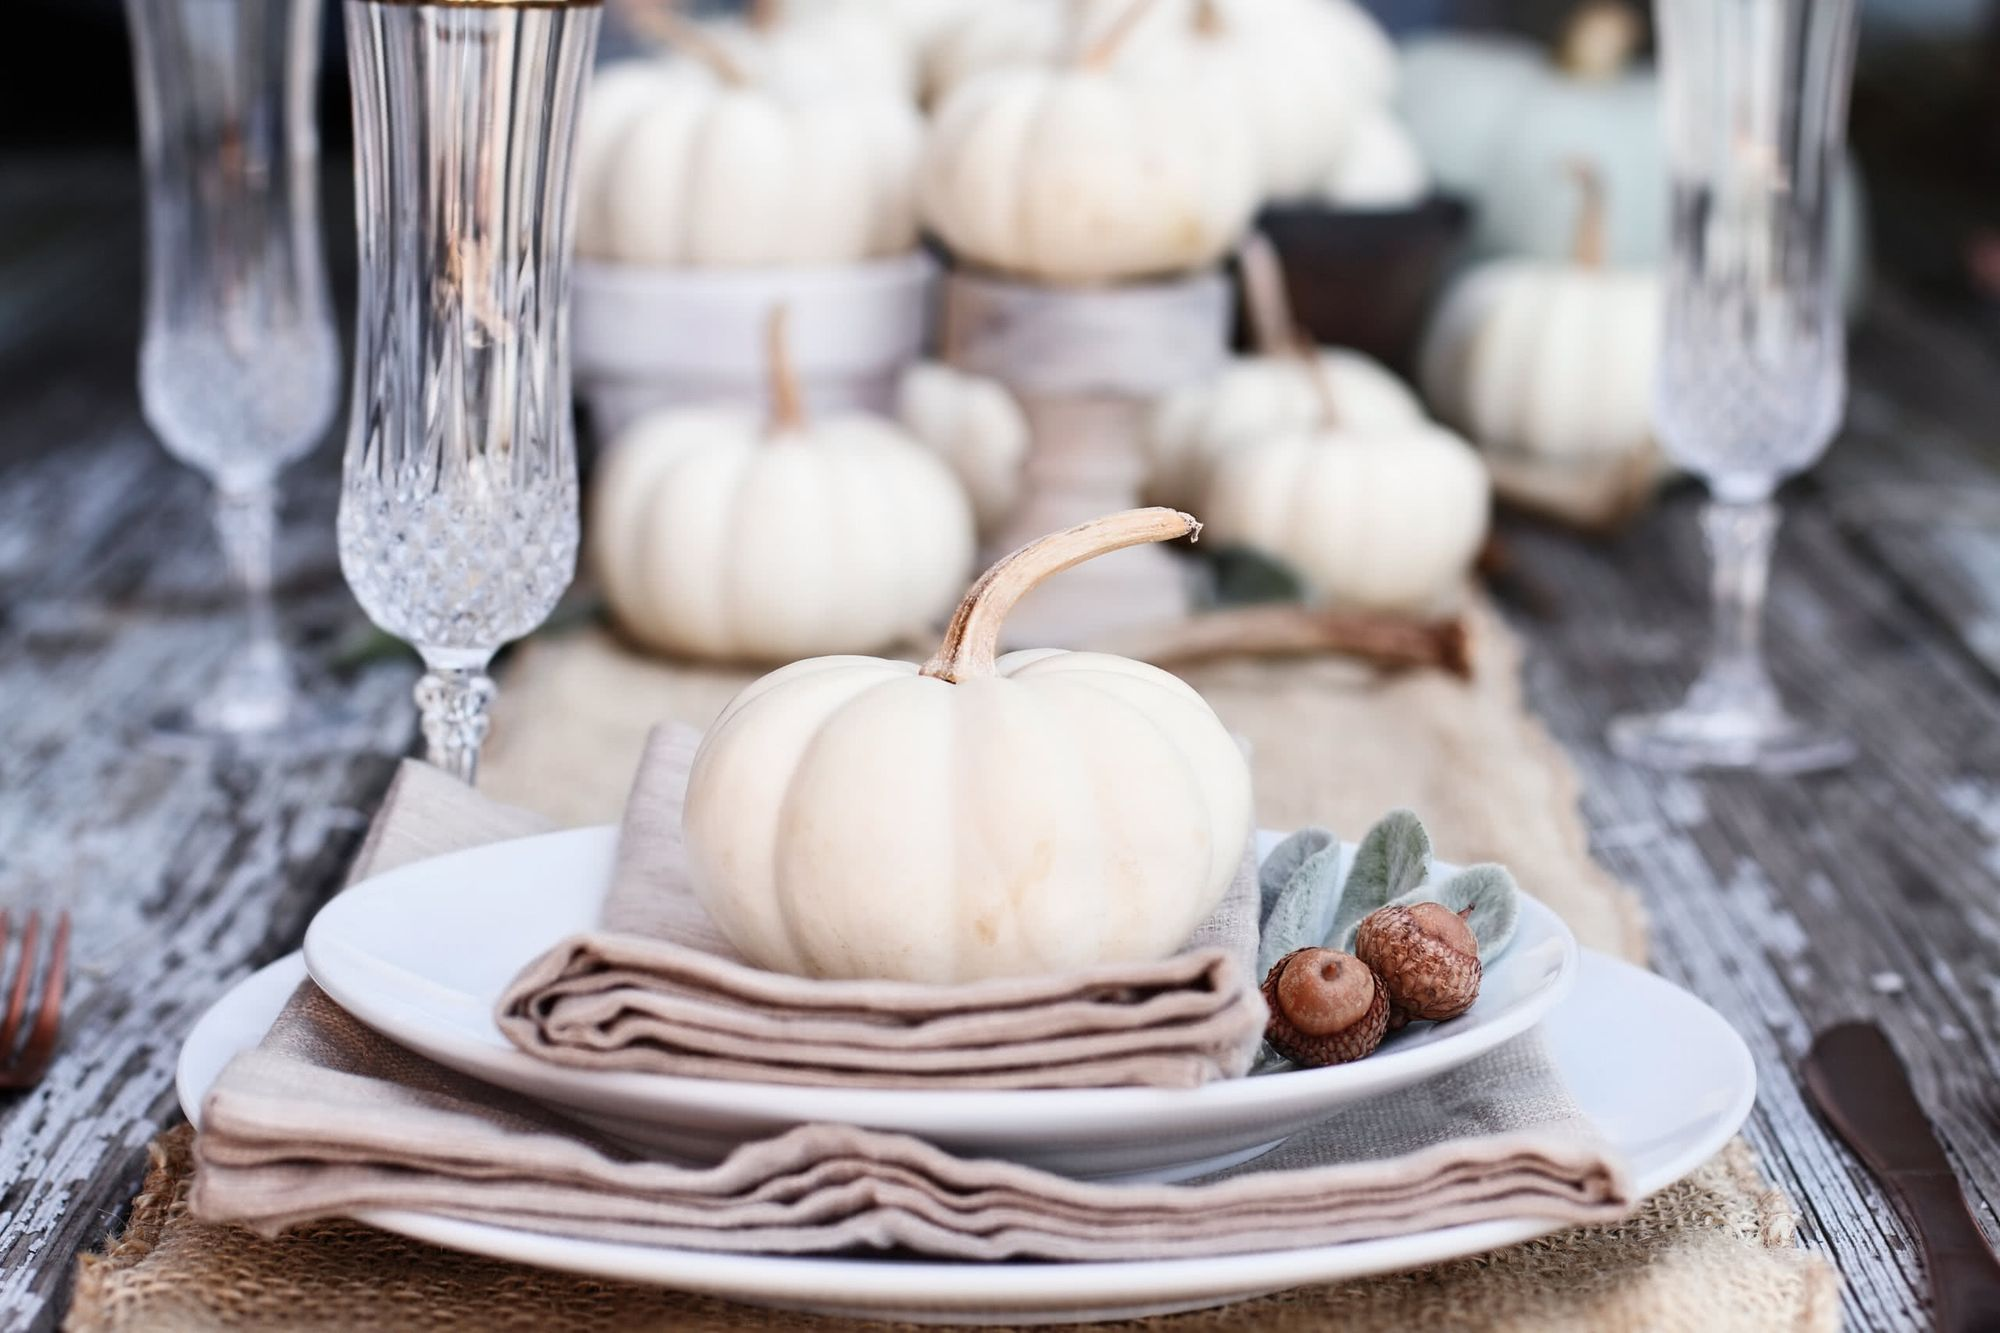 Simple Ways to Host a Memorable Thanksgiving in Your Apartment